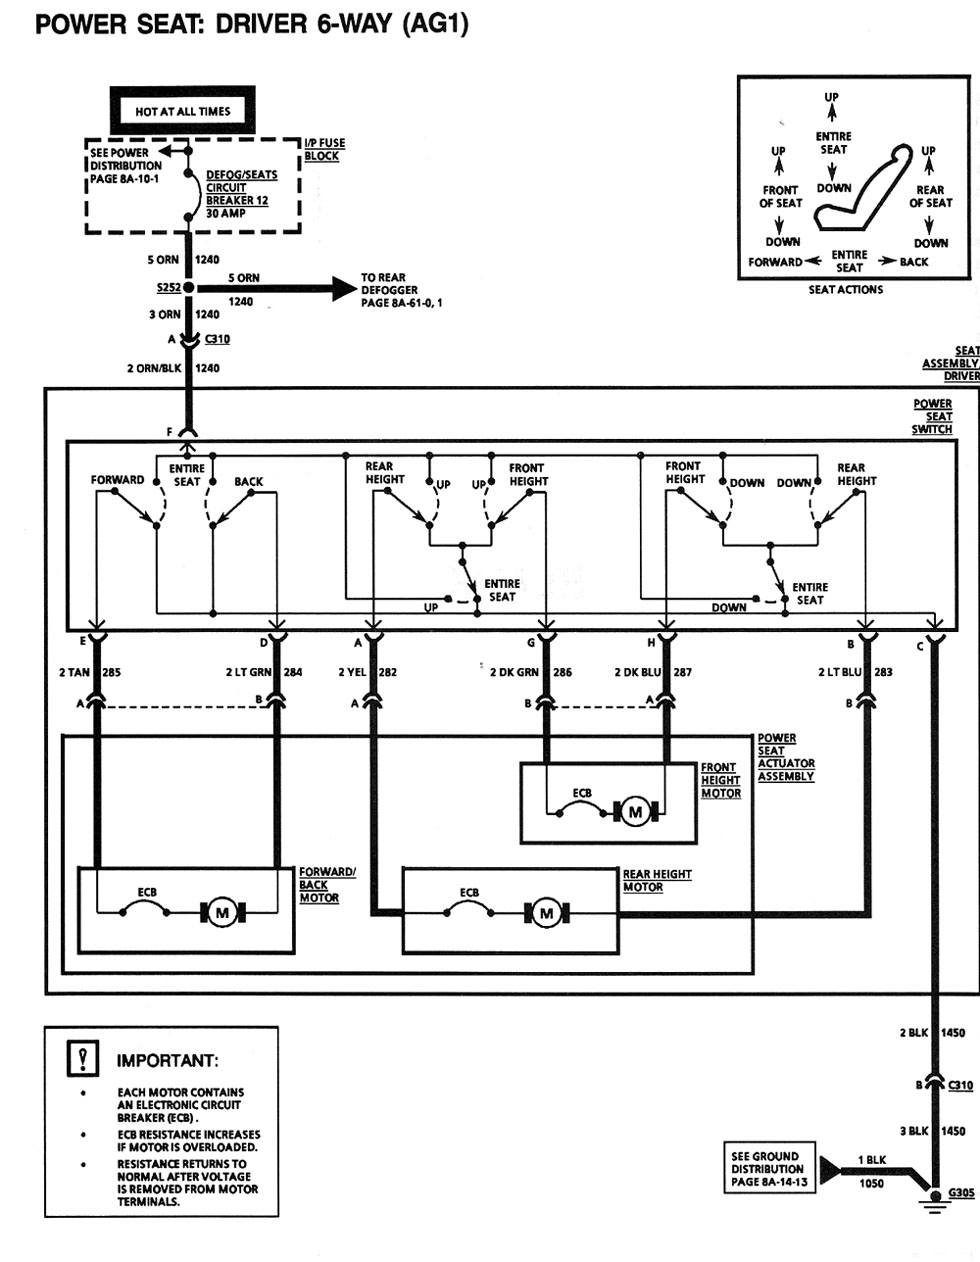 medium resolution of 97 camaro wiring diagrams wiring diagram mix 4th gen lt1 f body tech aids mix power